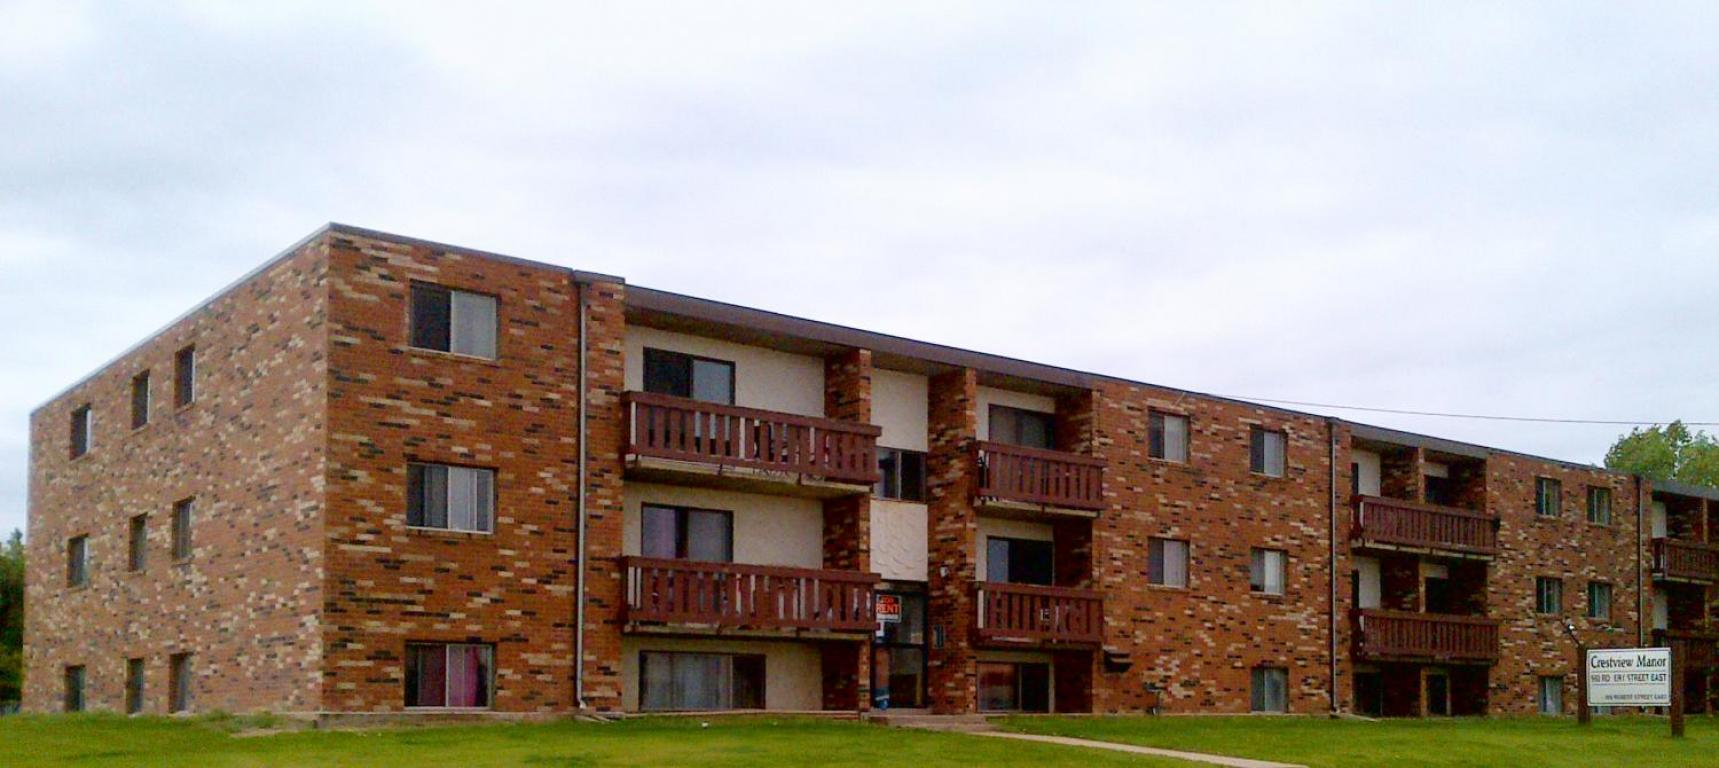 Swift Current 1 bedroom Apartment For Rent